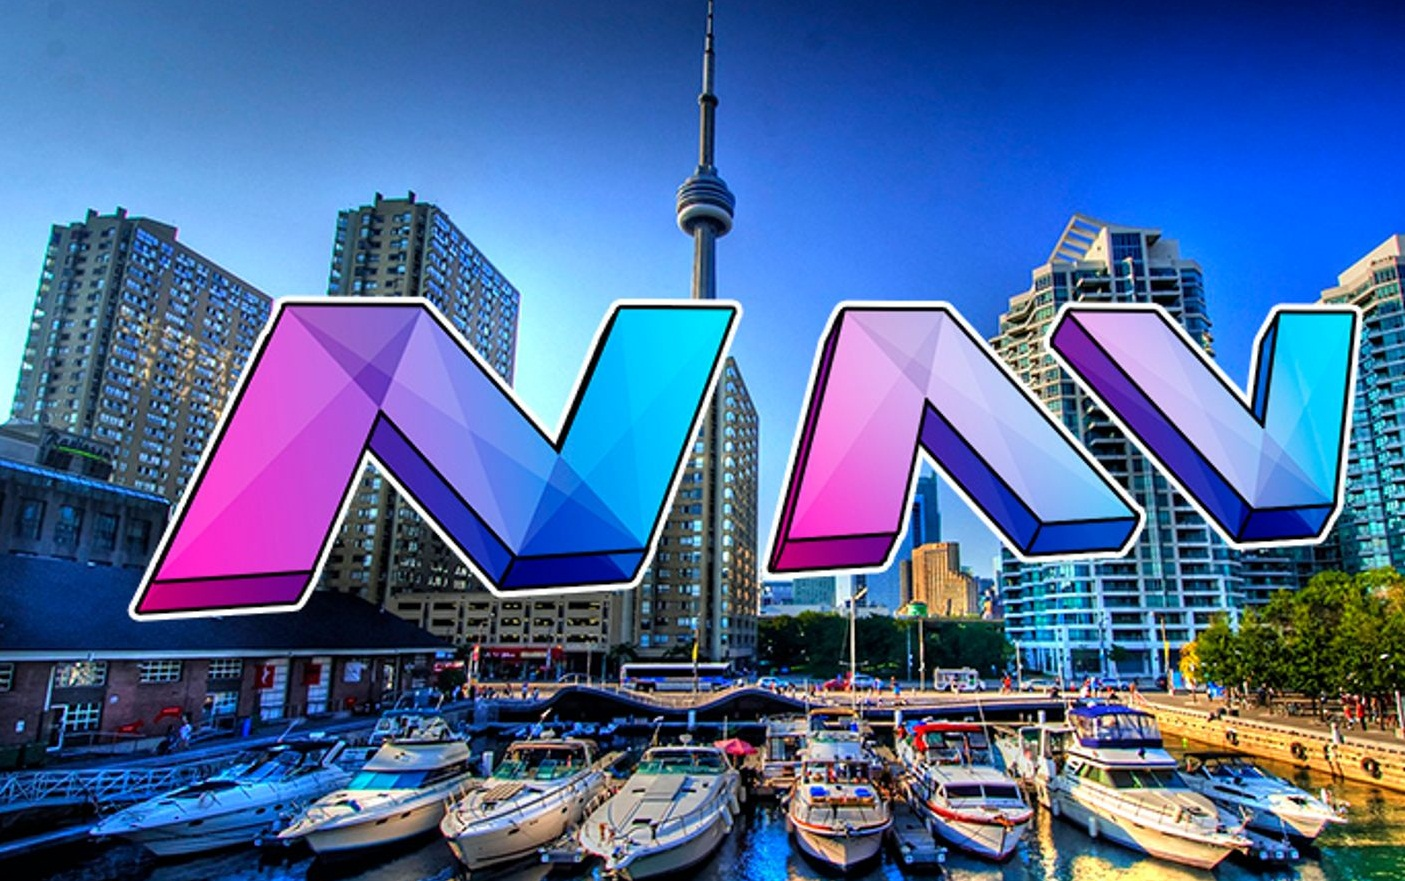 Fans Express: Future of NAV Coin : 3 Reasons To Watch NavCoin In 2019.